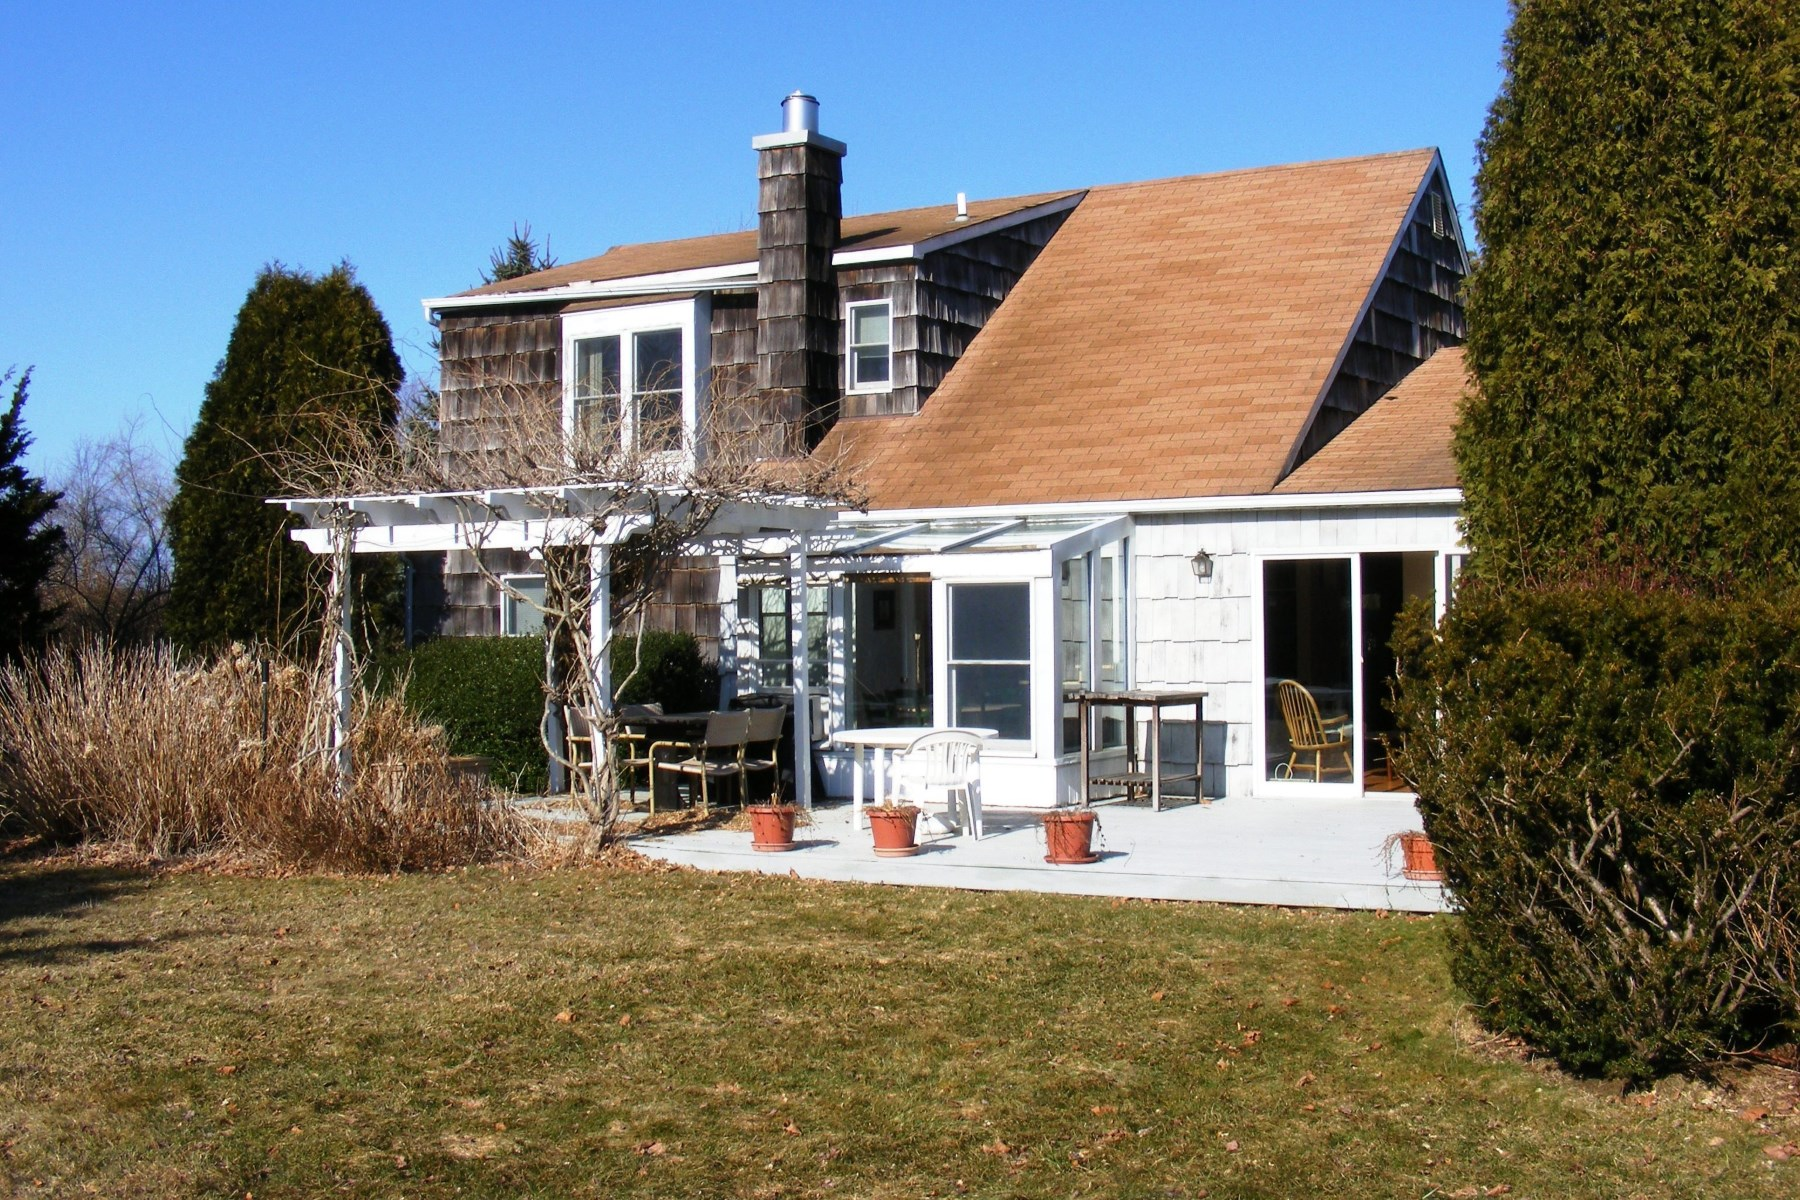 Single Family Home for Rent at Summer Ease - Southampton Convenience 15 Meadowgrass Ln Southampton, New York 11968 United States